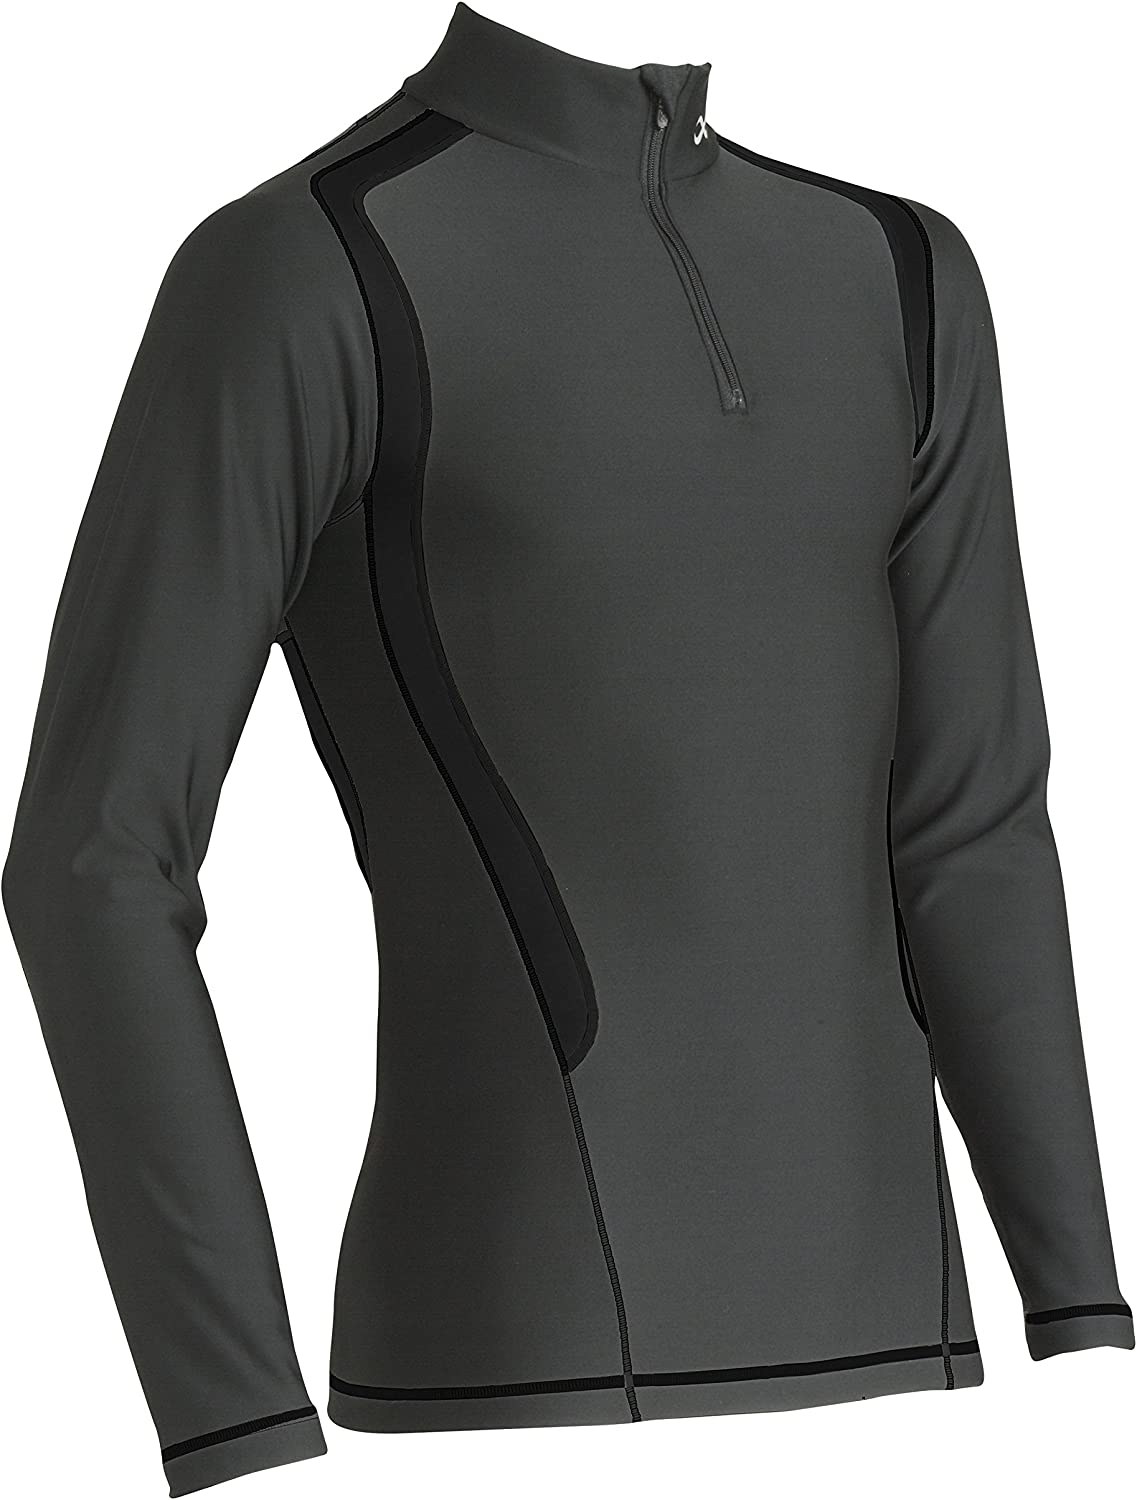 cw-x Conditioning WearメンズInsulator Web Top